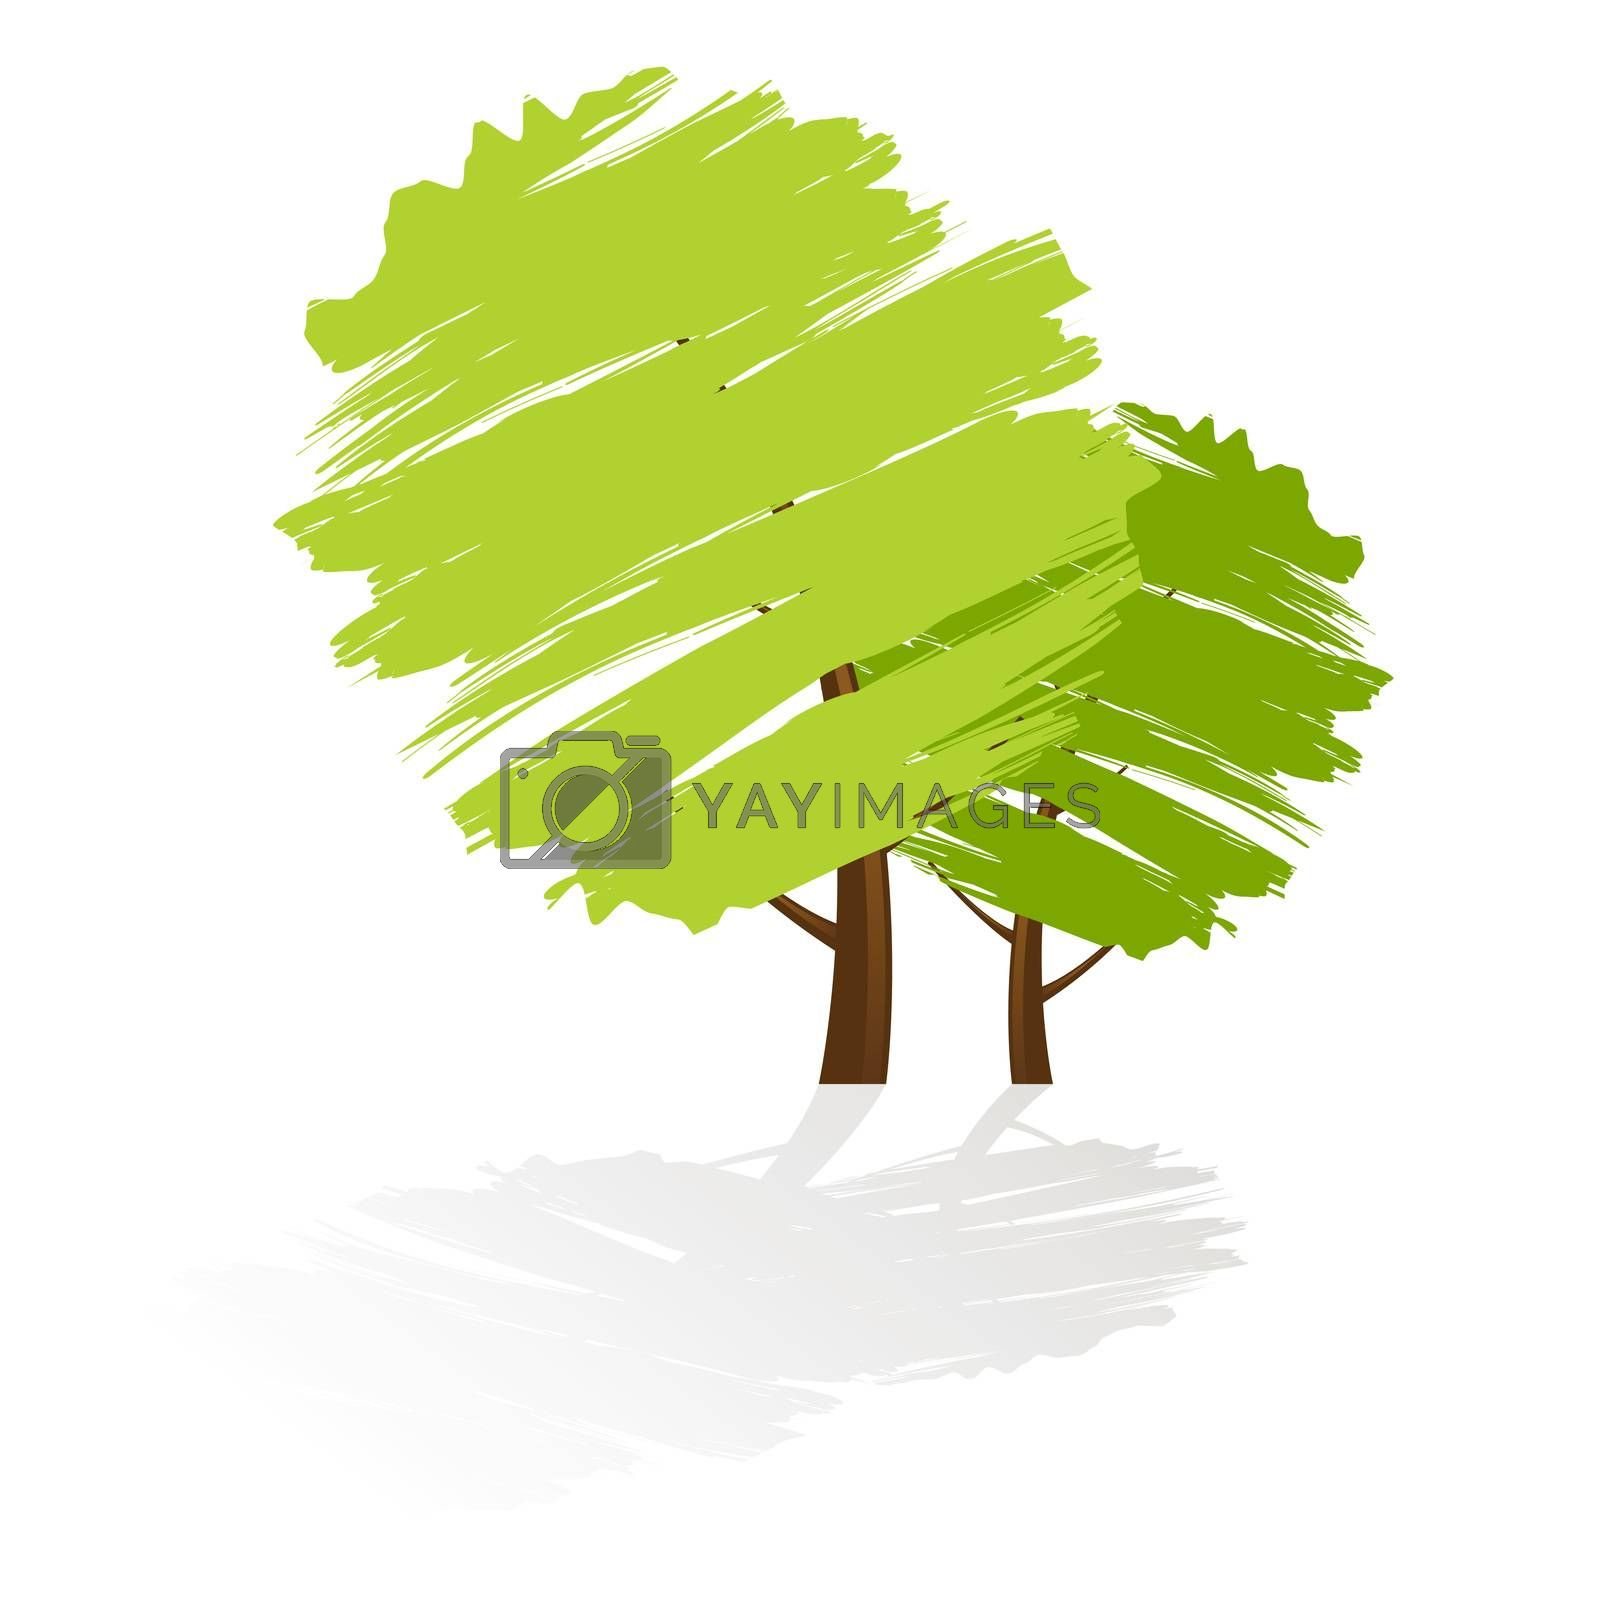 Tree icon by WaD